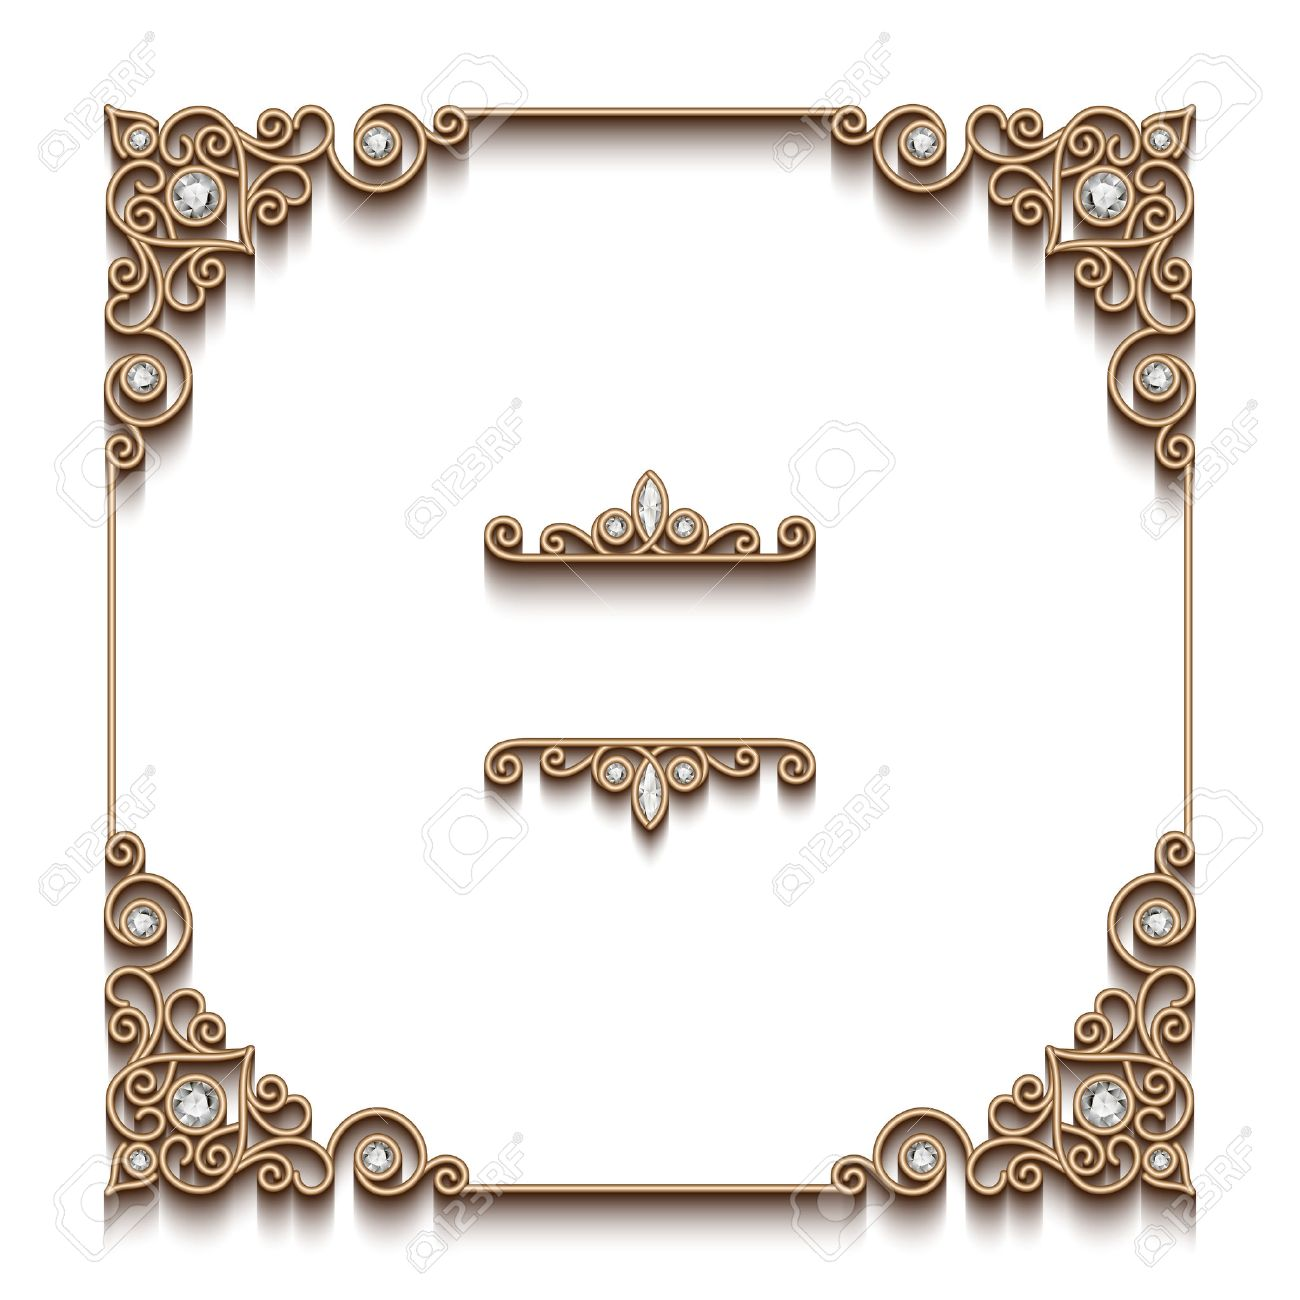 vector vintage gold background elegant square frame antique jewelry vignette on white